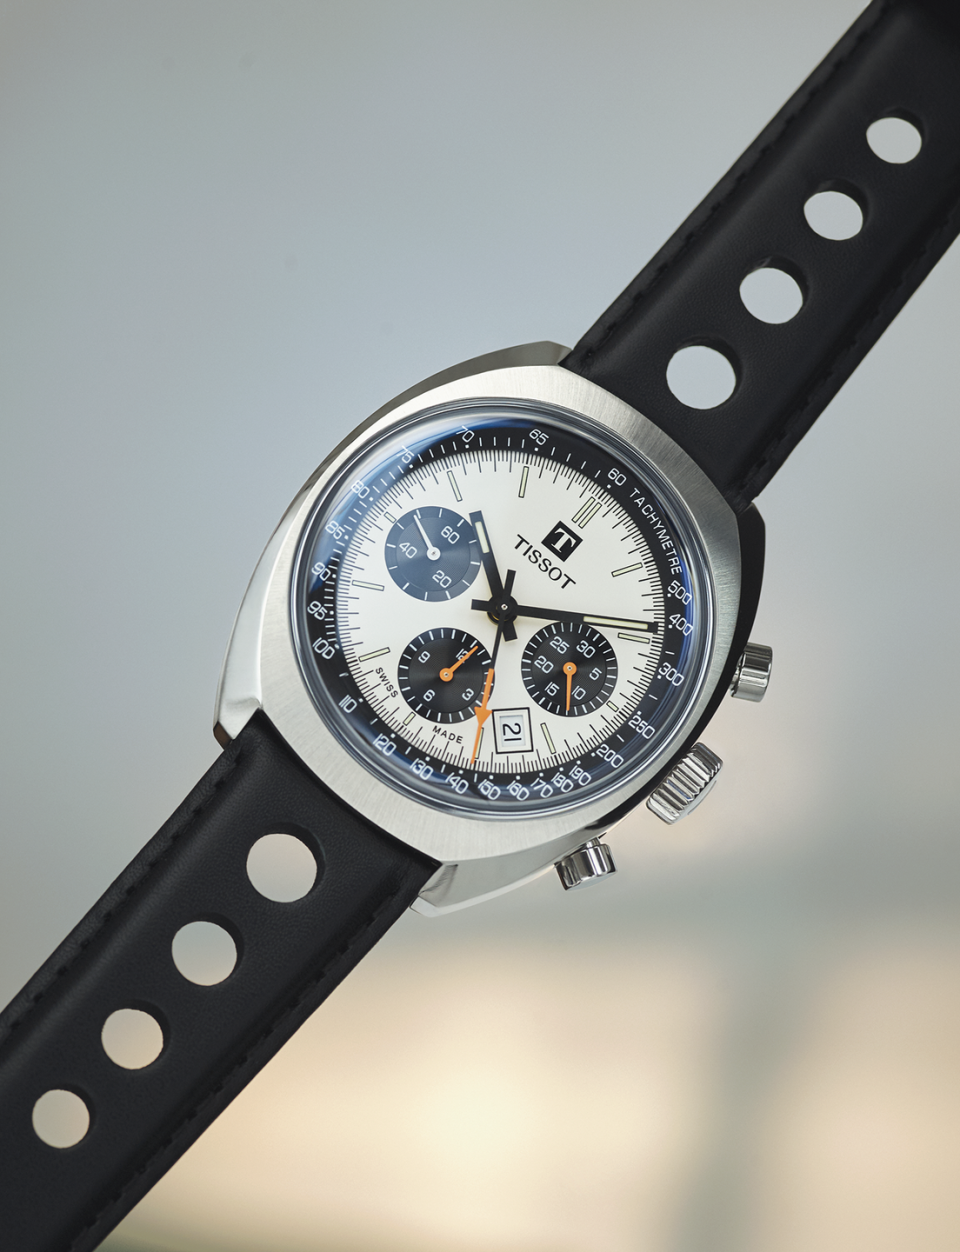 """<p>Heritage 1973 Chronograph</p><p><a class=""""link rapid-noclick-resp"""" href=""""https://go.redirectingat.com?id=127X1599956&url=https%3A%2F%2Fwww.ernestjones.co.uk%2Fwebstore%2Fl%2Fsearch%2Fbrand%257Ctissot%2Fstock%2Bposition%257Cin%2Bstock%2F&sref=https%3A%2F%2Fwww.esquire.com%2Fuk%2Fwatches%2Fg25973970%2Fbest-mens-watches%2F"""" rel=""""nofollow noopener"""" target=""""_blank"""" data-ylk=""""slk:SHOP"""">SHOP</a><br>The Swiss brand first engaged with motor racing during the Fifties, finding its greatest success in the Seventies sponsoring entrants at the Le Mans 24-hour endurance races and claiming a podium first place with French car builder Alpine at the Monte Carlo Rally World Championship in 1973. This year's Heritage release revisits Tissot's original mechanical racing watch, the Navigator, fairly faithfully while adding new tweaks. Inside the polished steel 43mm case, the three-dial panda layout is highlighted with green Super-LumiNova indices and sporty little neon-orange counters, the date window is repositioned between 4 and 5 o'clock, and it's all mounted on a period-perfect black perforated leather racing strap. Limited to an appropriate 1,973 pieces, the race is on to catch up with one. </p><p>£1,615; <a href=""""https://www.tissotwatches.com/"""" rel=""""nofollow noopener"""" target=""""_blank"""" data-ylk=""""slk:tissotwatches.com"""" class=""""link rapid-noclick-resp"""">tissotwatches.com</a></p>"""